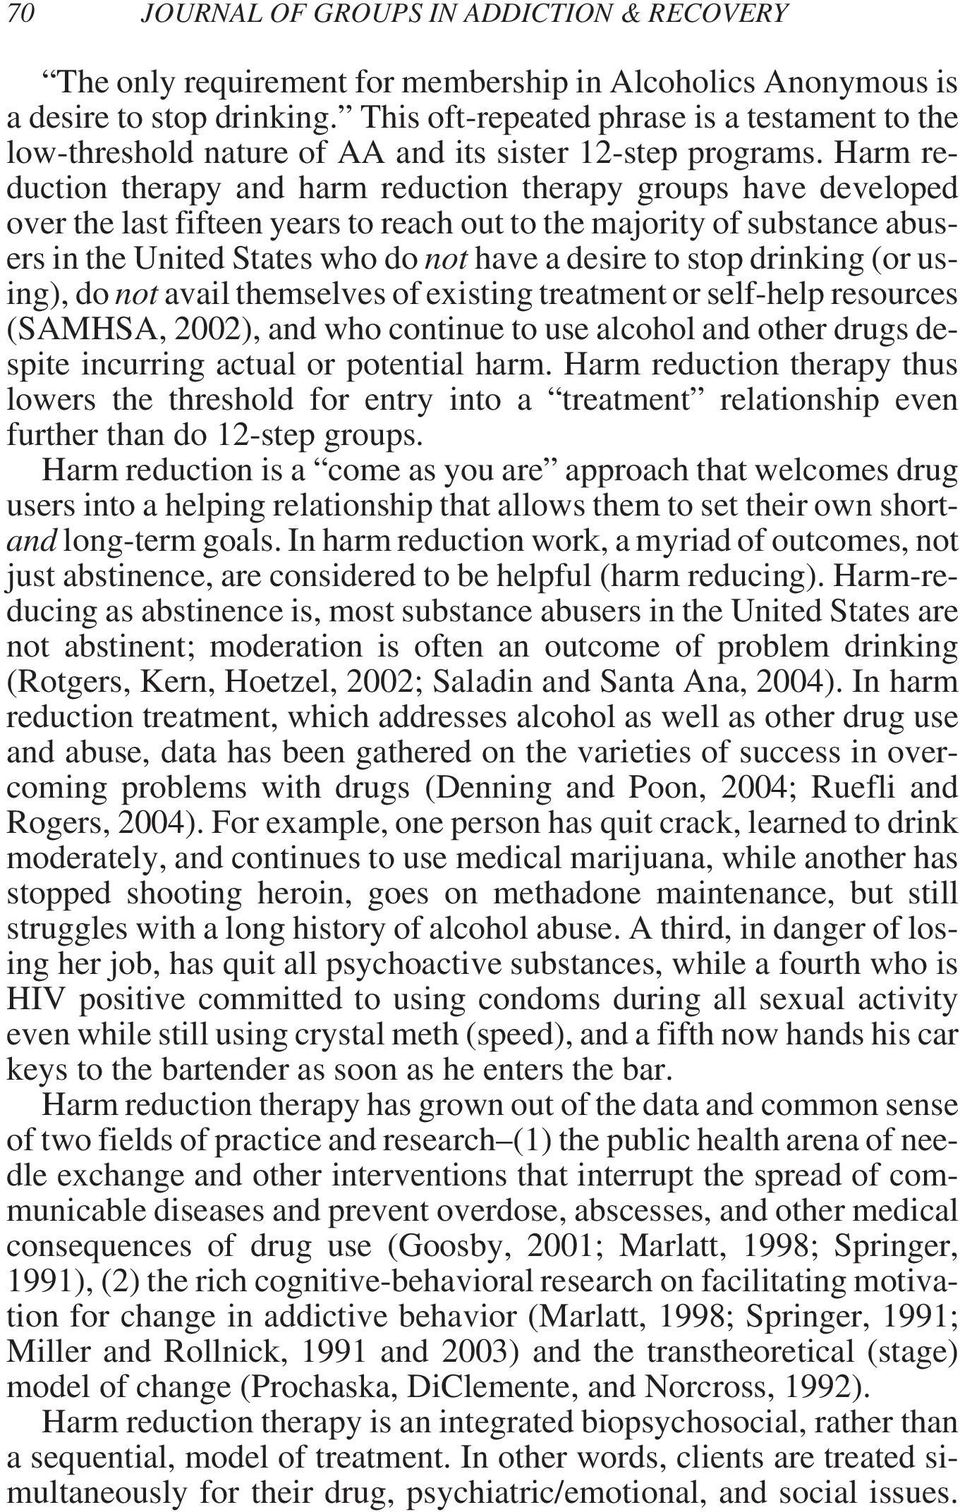 Harm reduction therapy and harm reduction therapy groups have developed over the last fifteen years to reach out to the majority of substance abusers in the United States who do not have a desire to